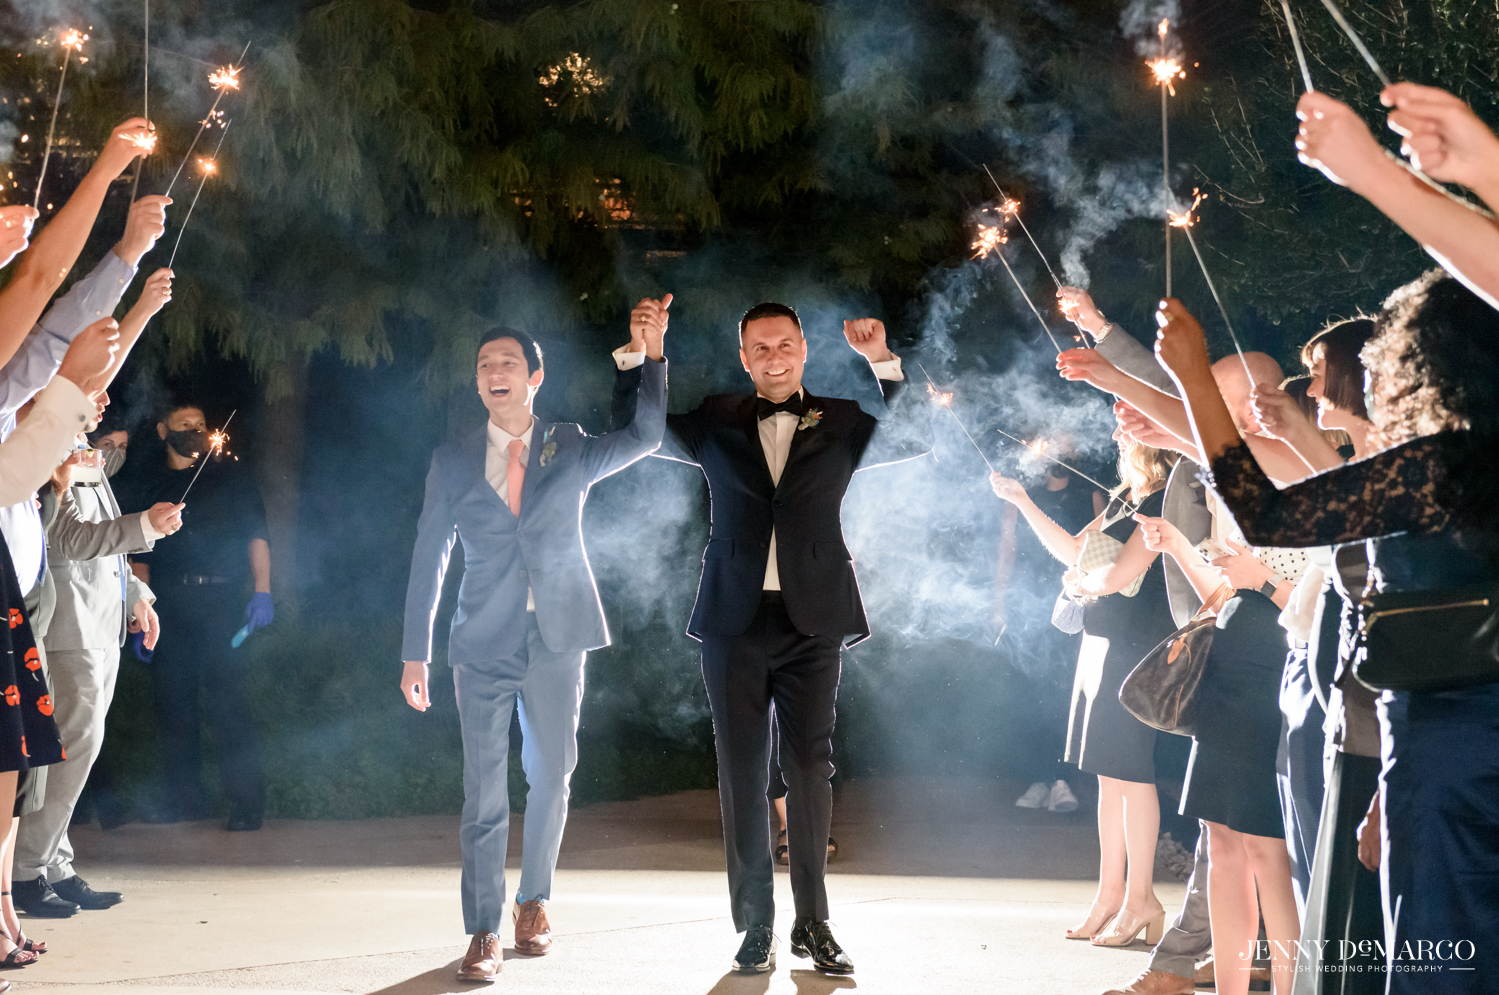 Grooms walking out while guests hold sparklers around them and cheer